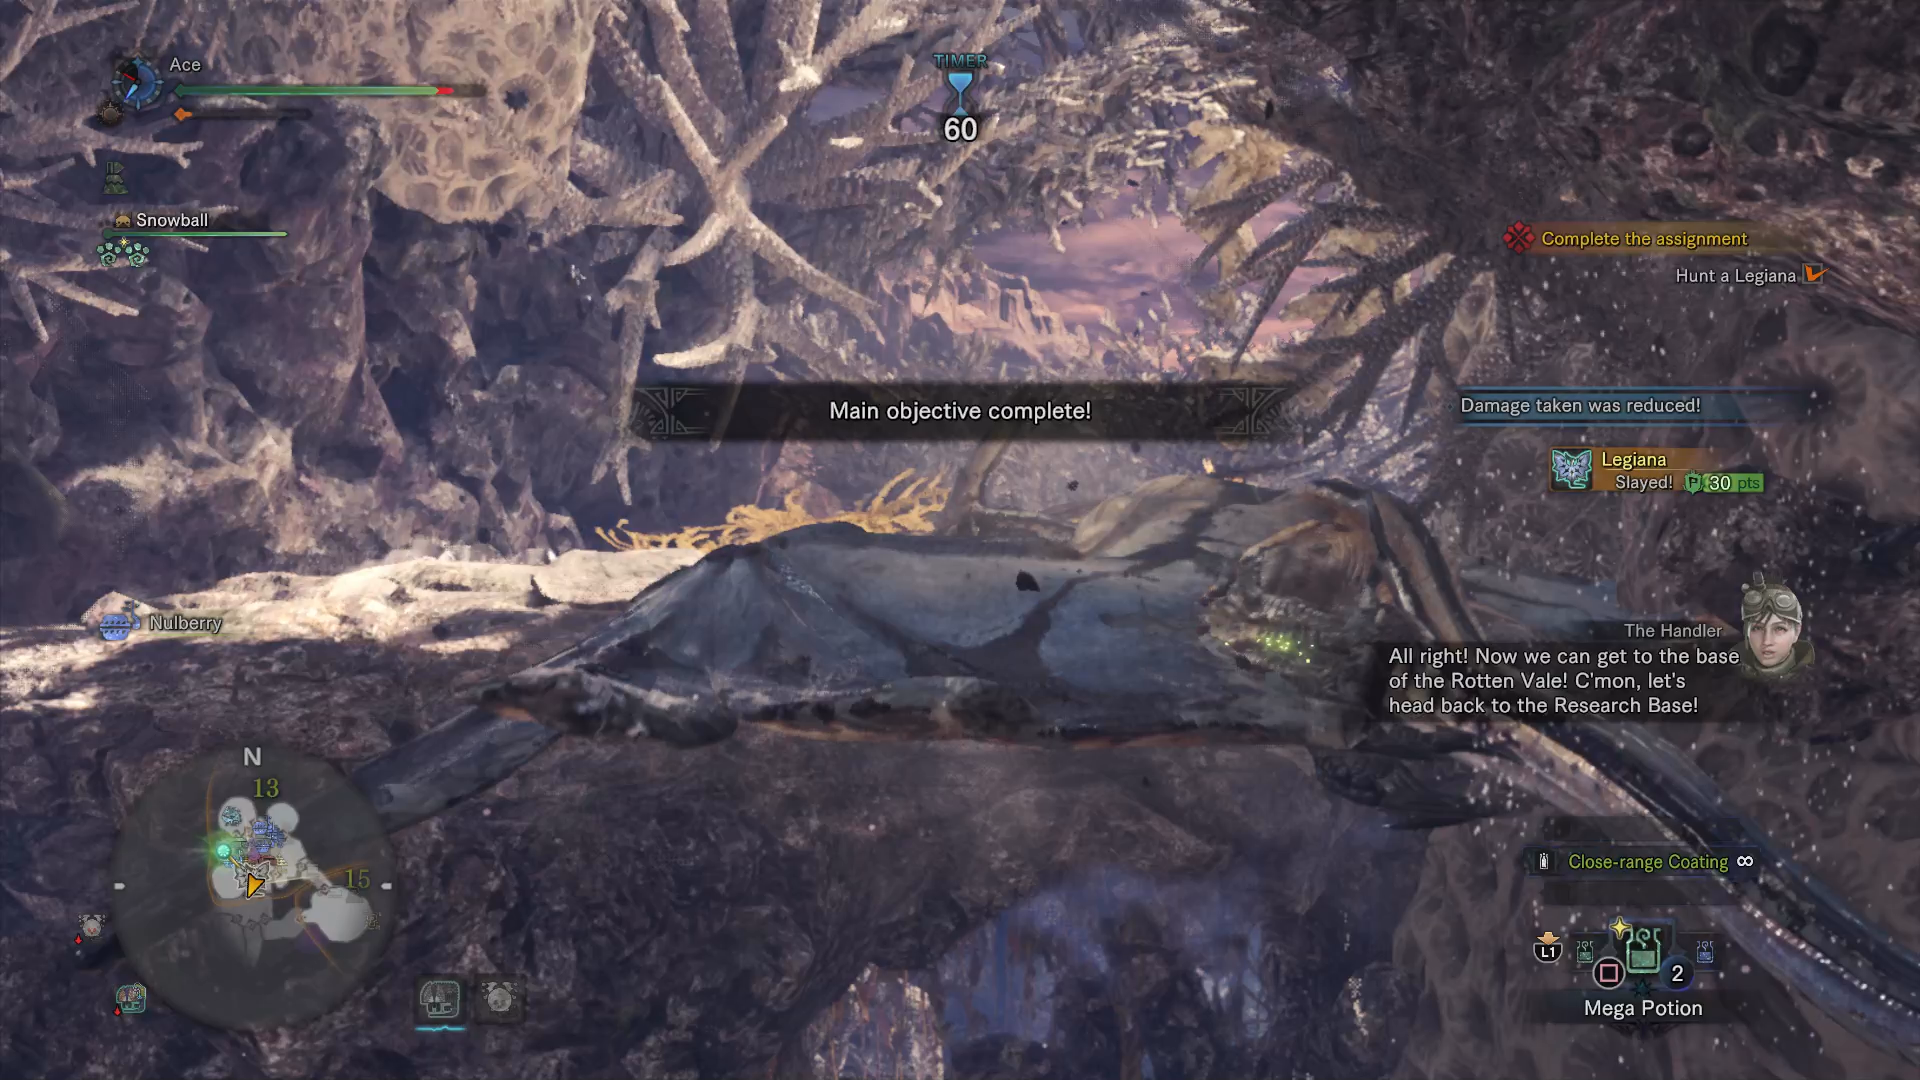 Monster Hunter World Legiana How To Track And Kill The Legiana